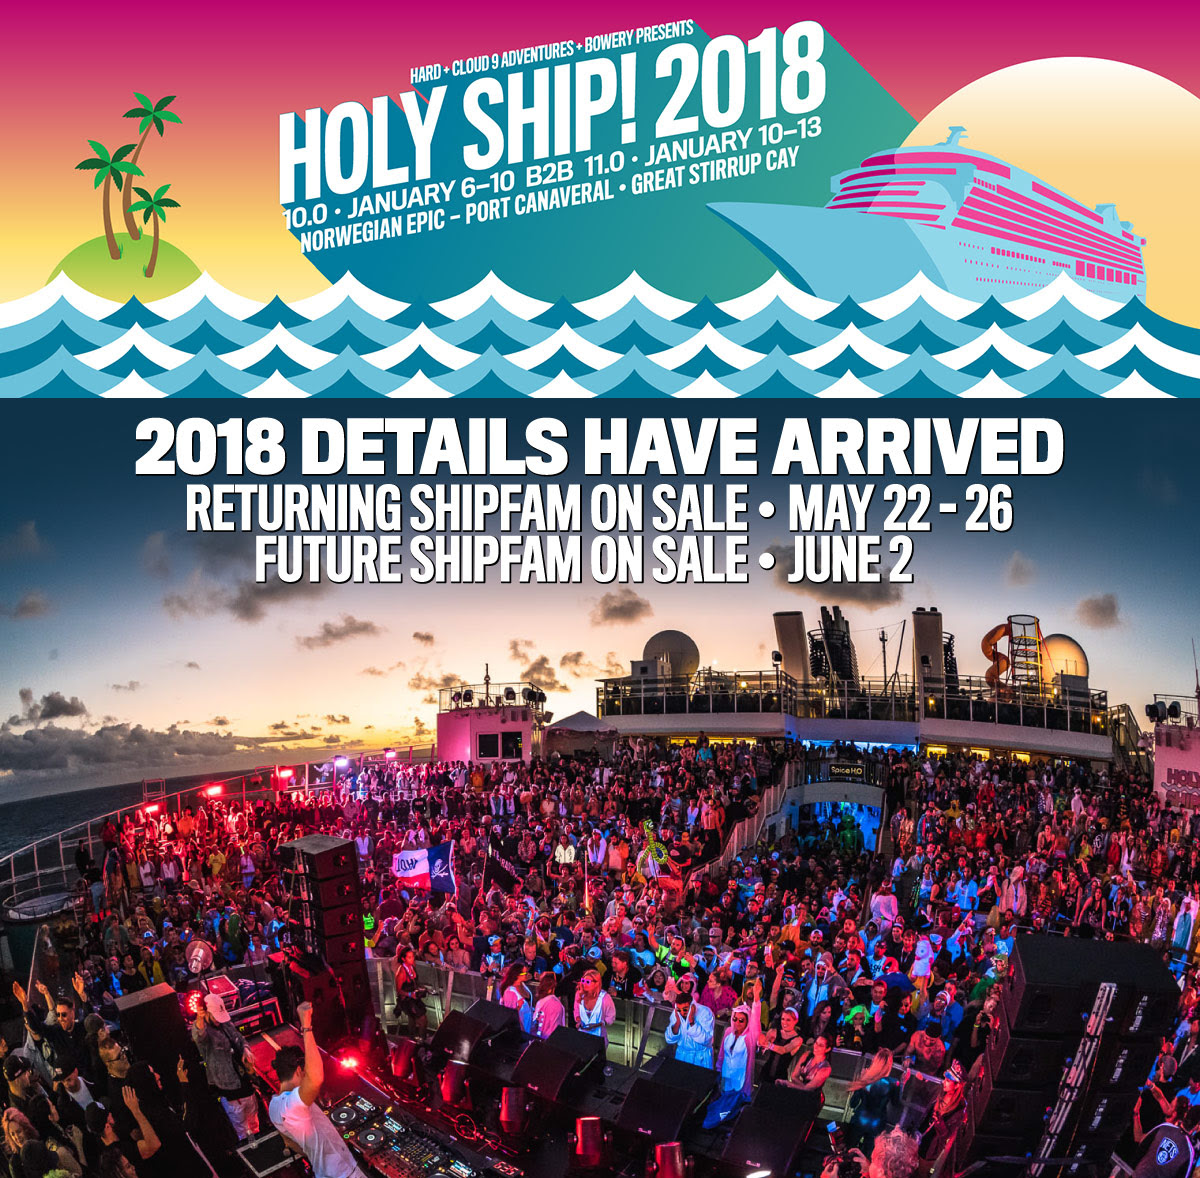 Holy Ship 2018 Details